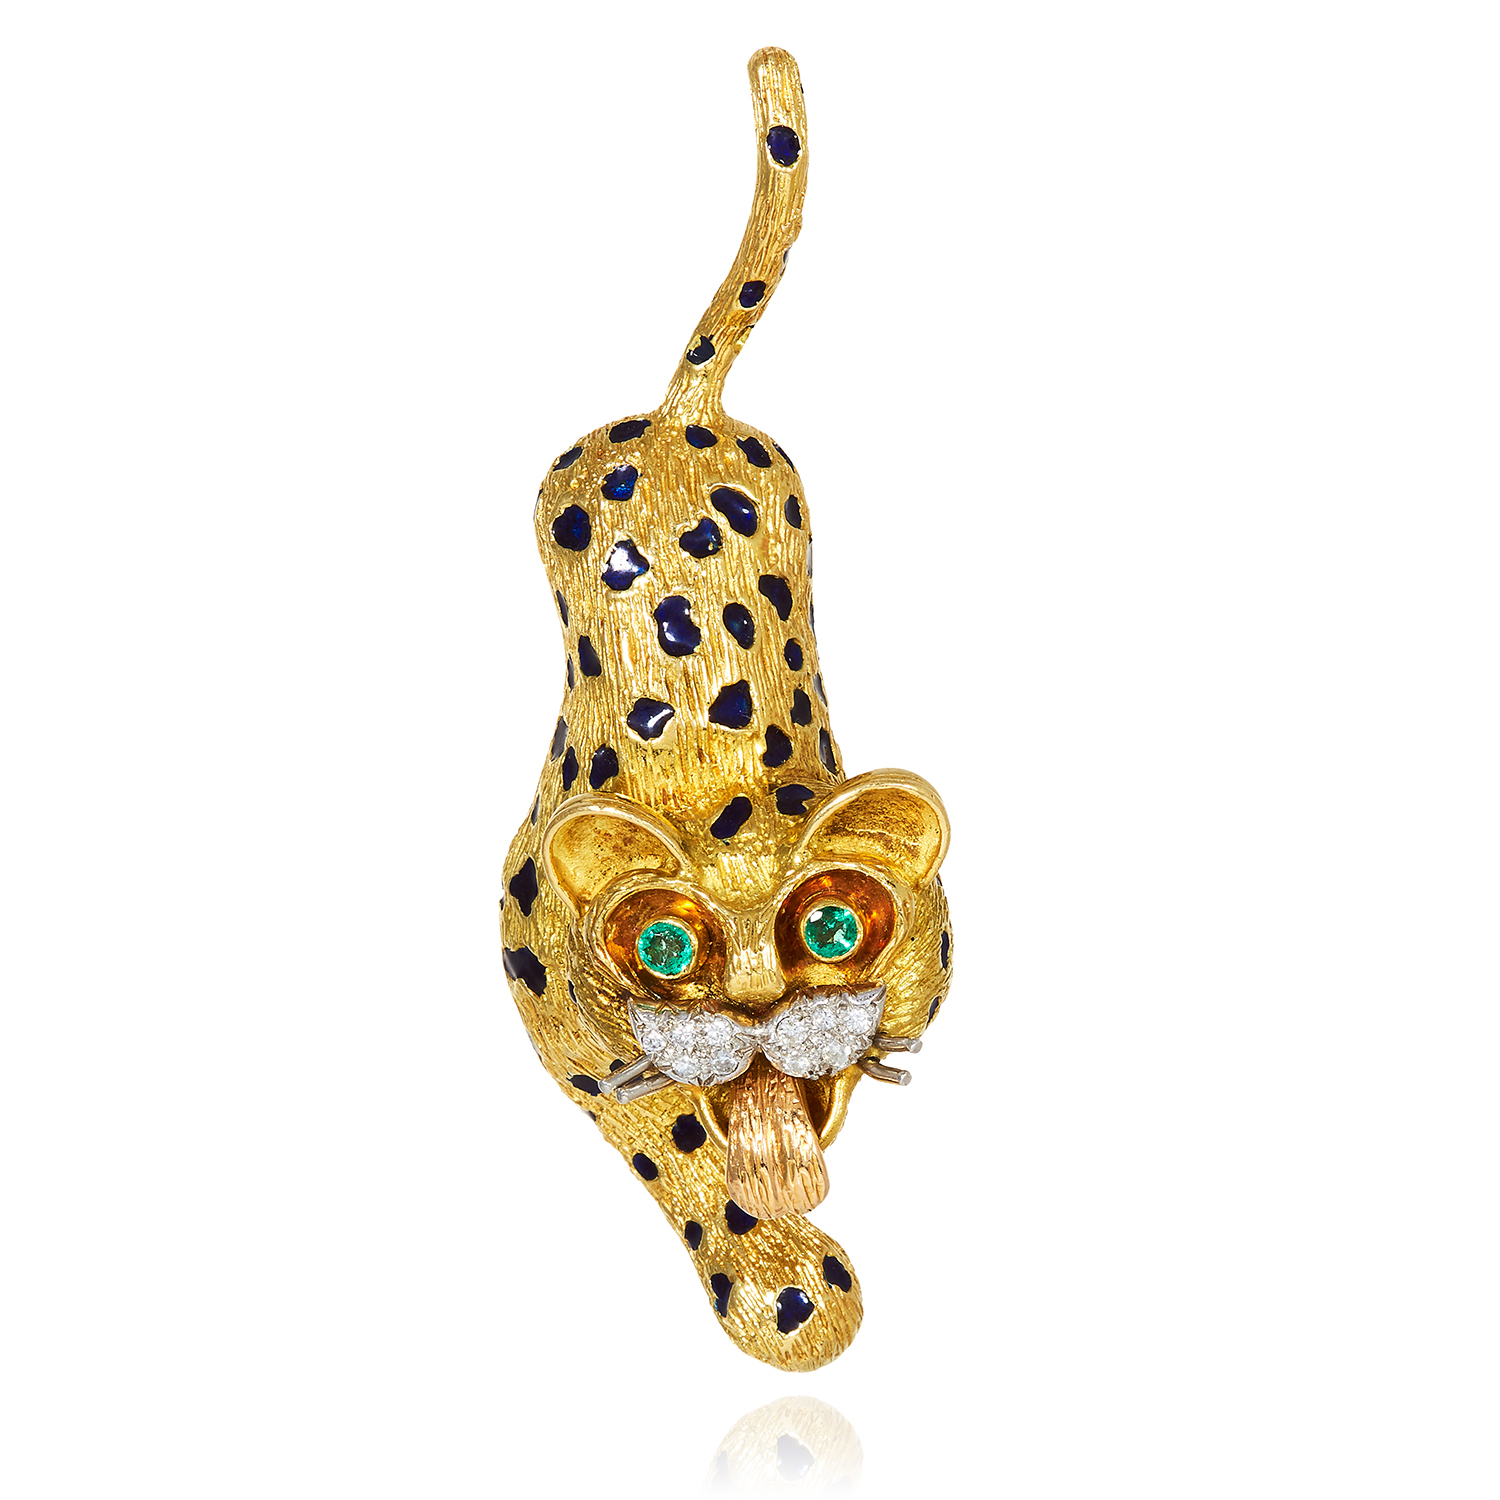 AN EMERALD, DIAMOND AND ENAMEL PANTHER BROOCH, KUTCHINSKY, CIRCA 1967 in 18ct yellow gold,